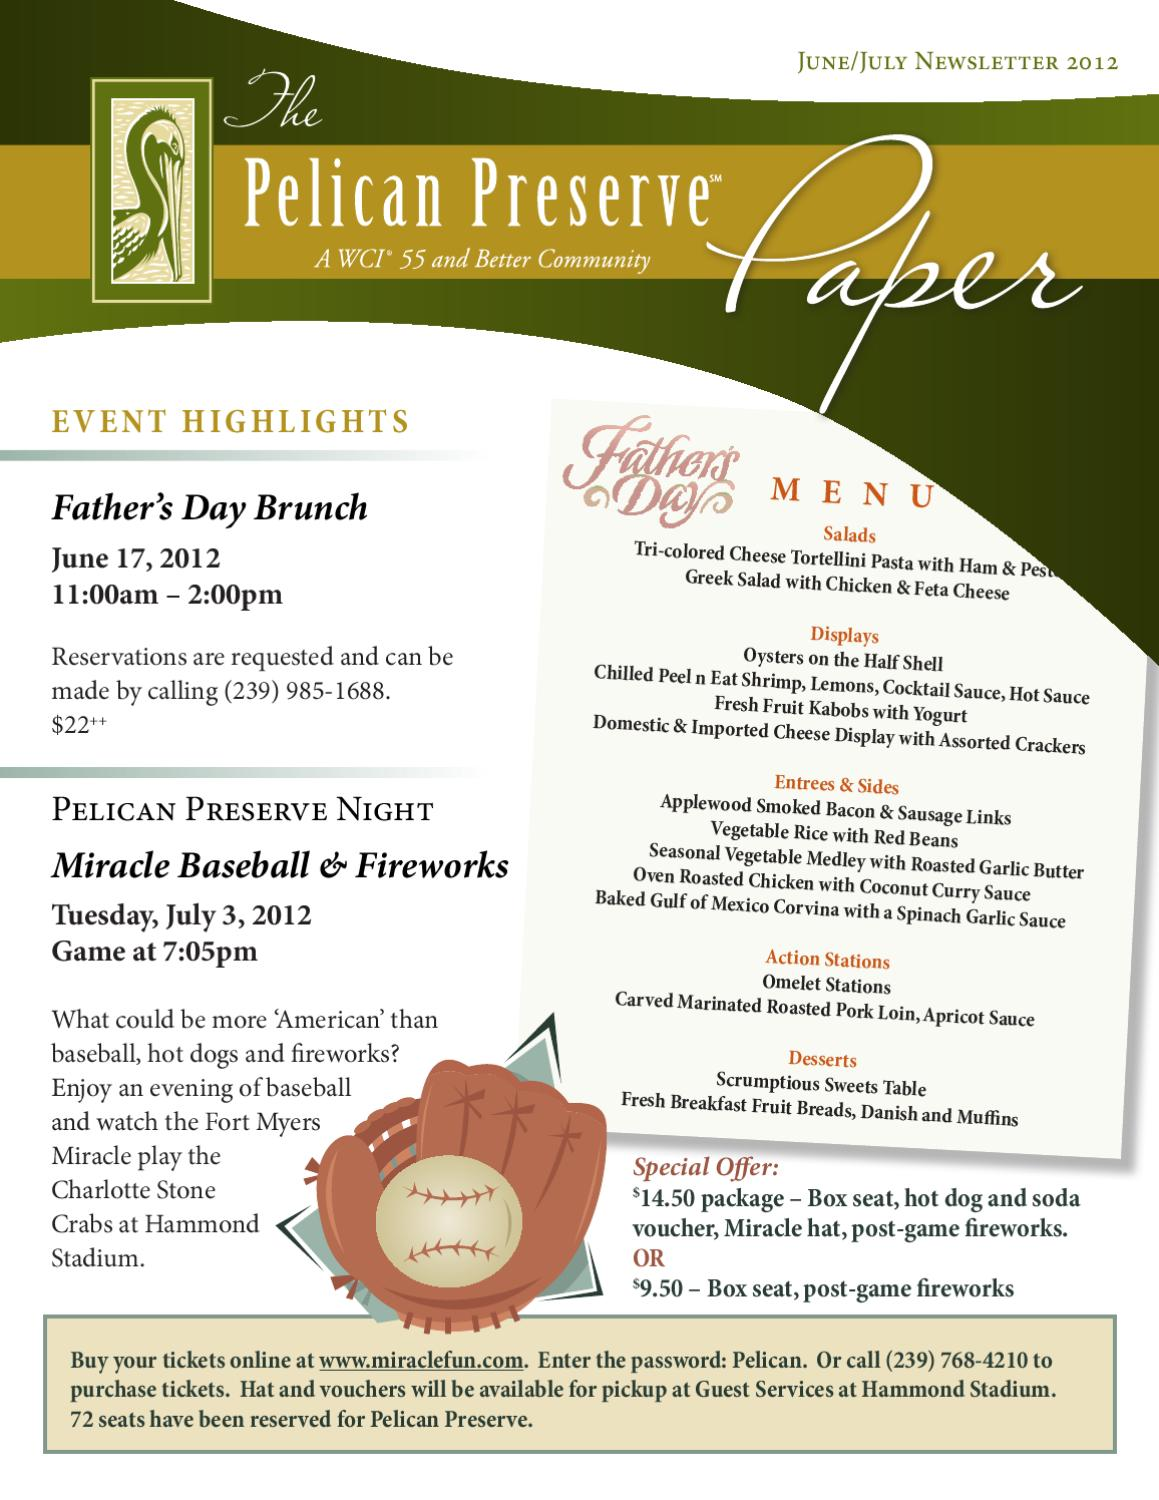 Pelican Preserve June/July Amenity Newsletter by Pelican